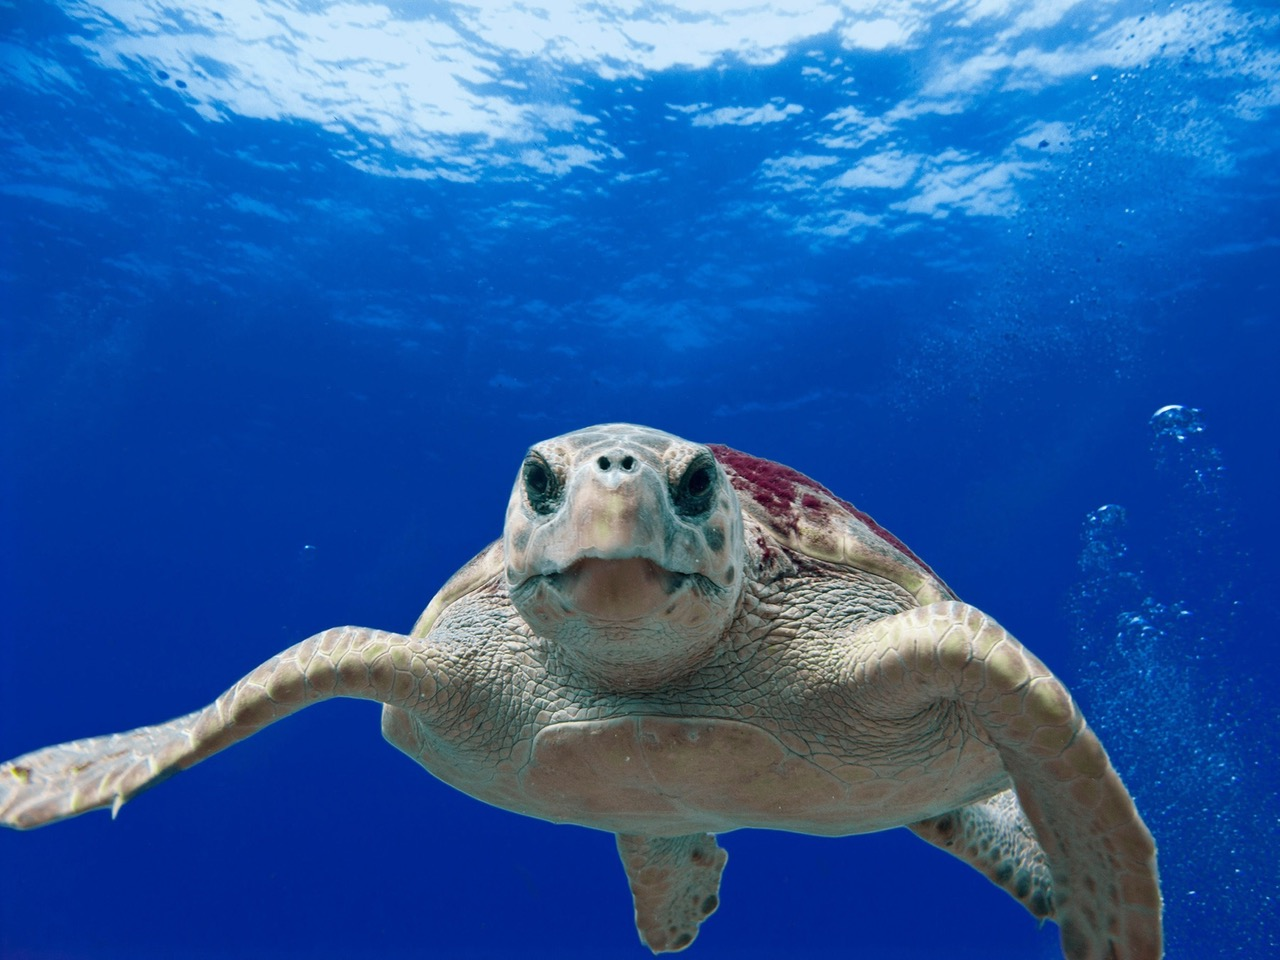 Discover one of the largest sea turtles